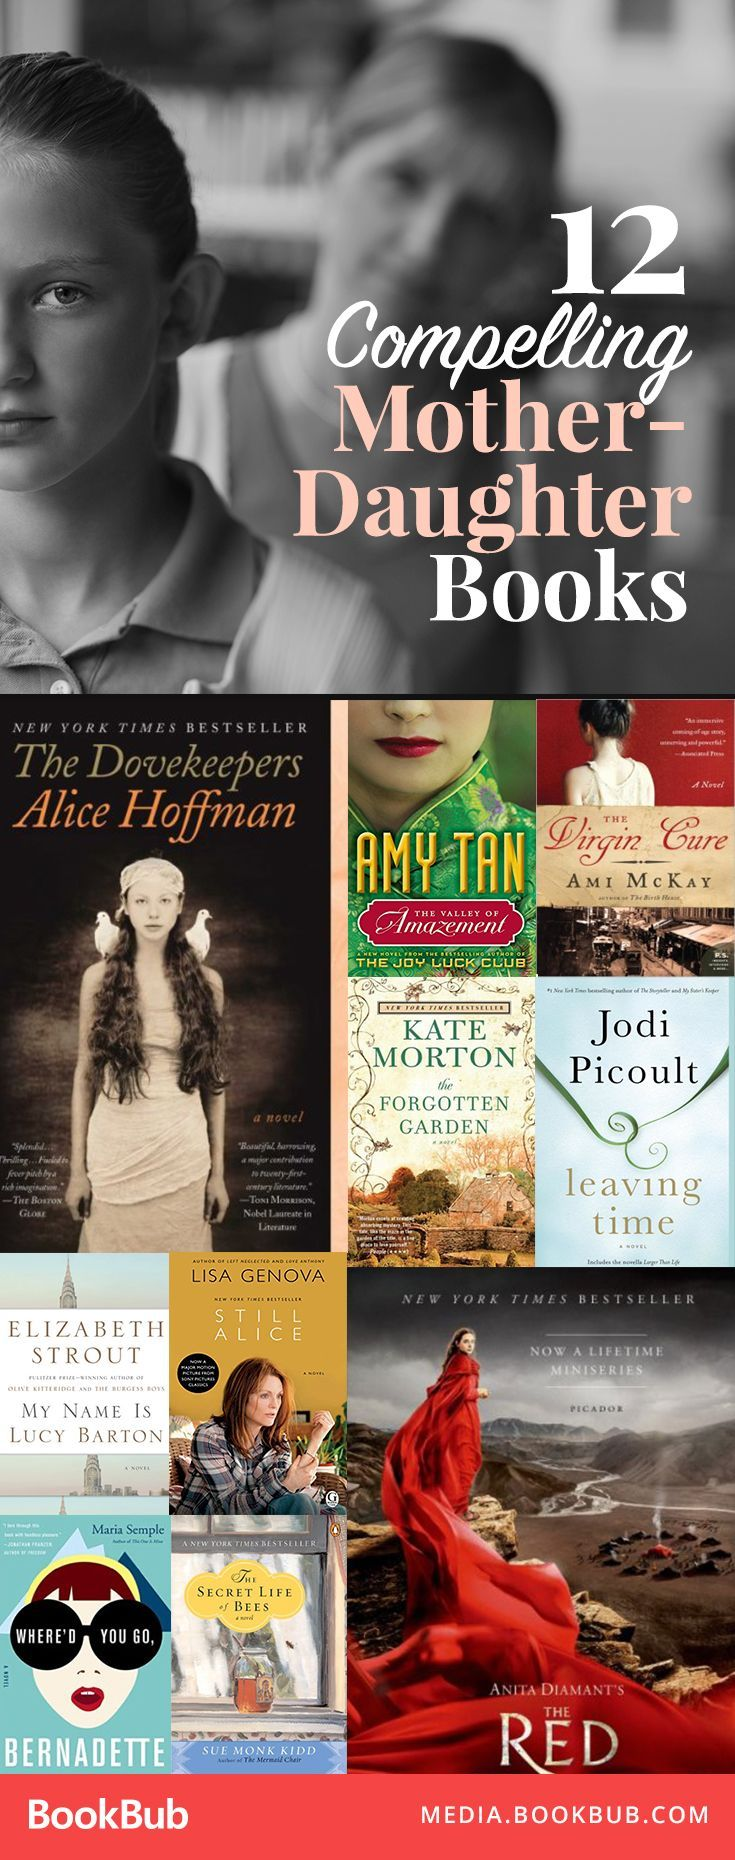 12pelling Novels About Motherdaughter Relationships These Are Great  Books For Women Or